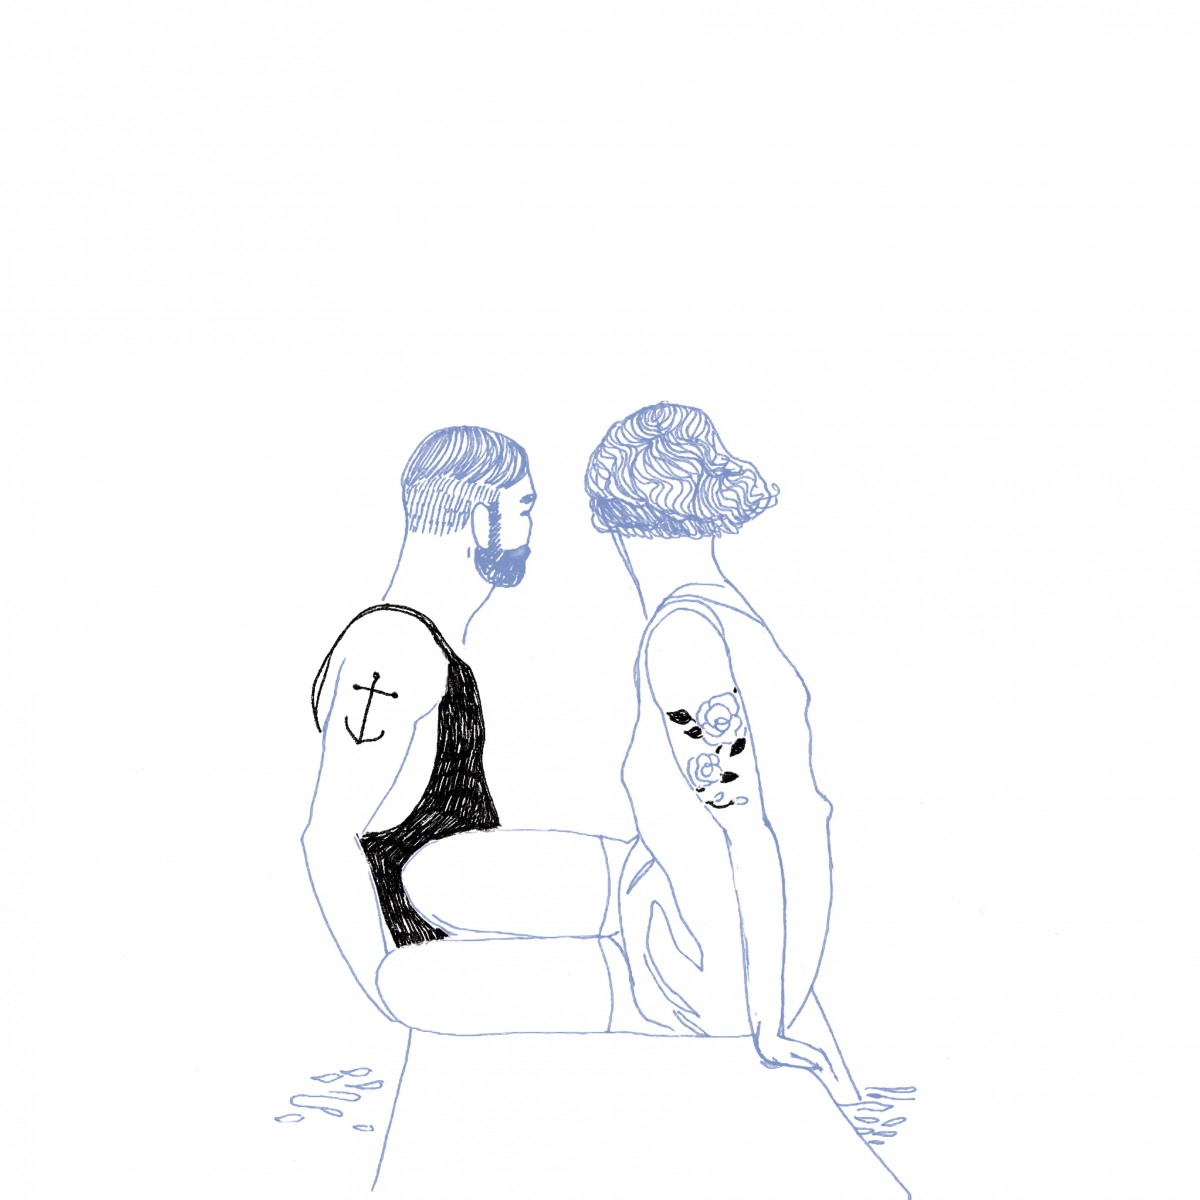 @vincentmoustache back of 2 swimmers on the trampoline. Illustration in black & blue. Tattoos in the arms.